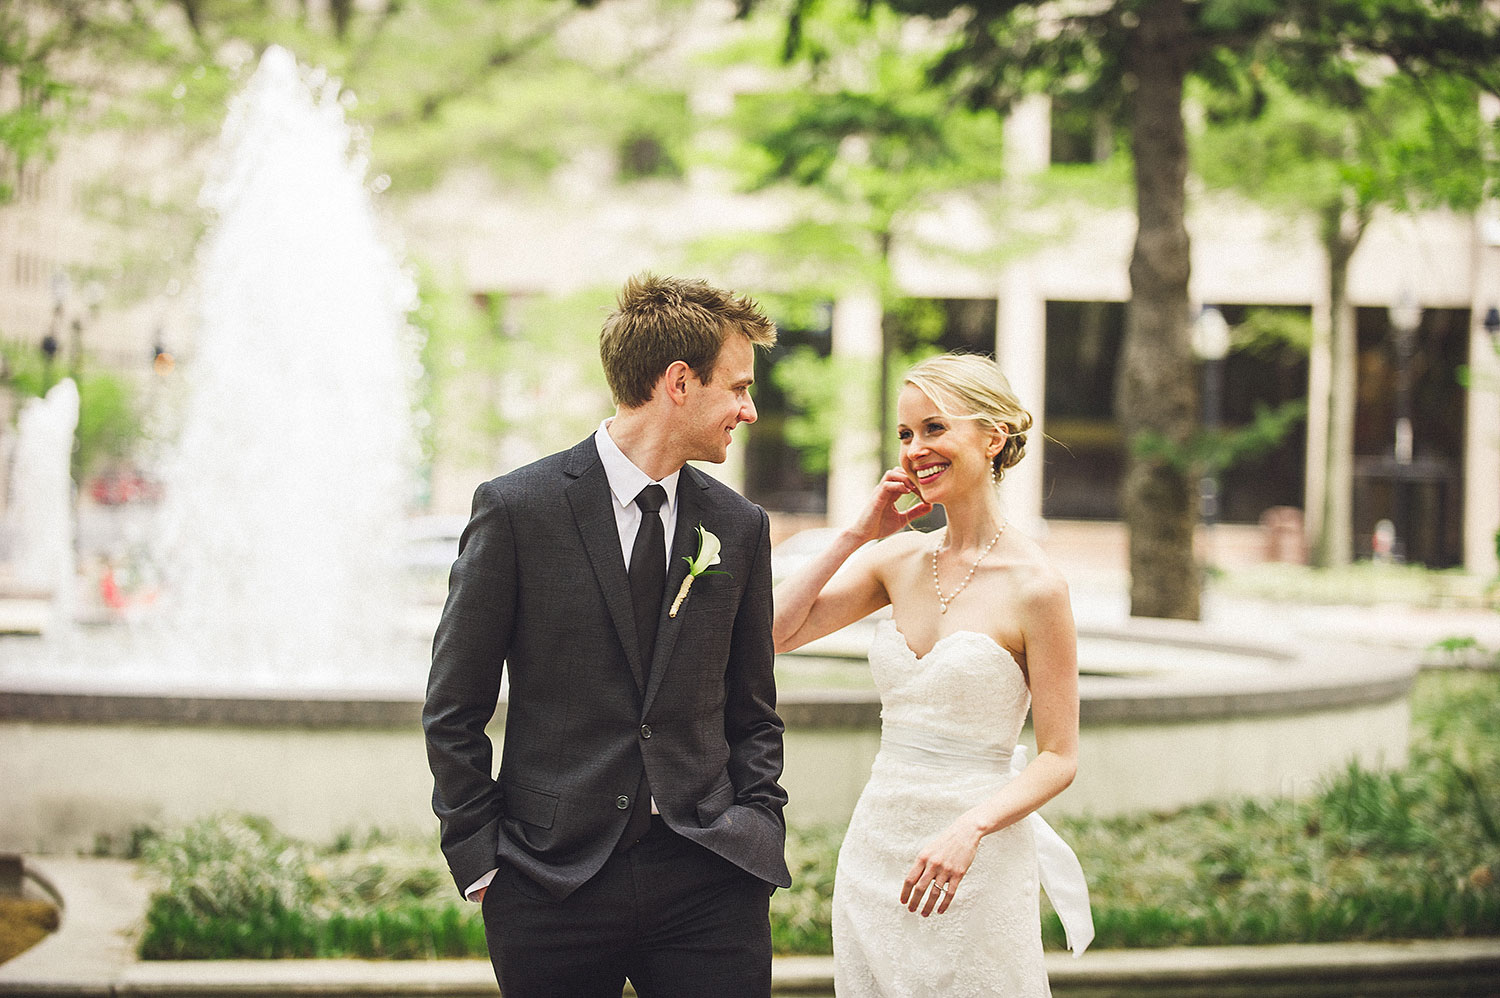 rockwood-carriage-house-wedding-13.jpg